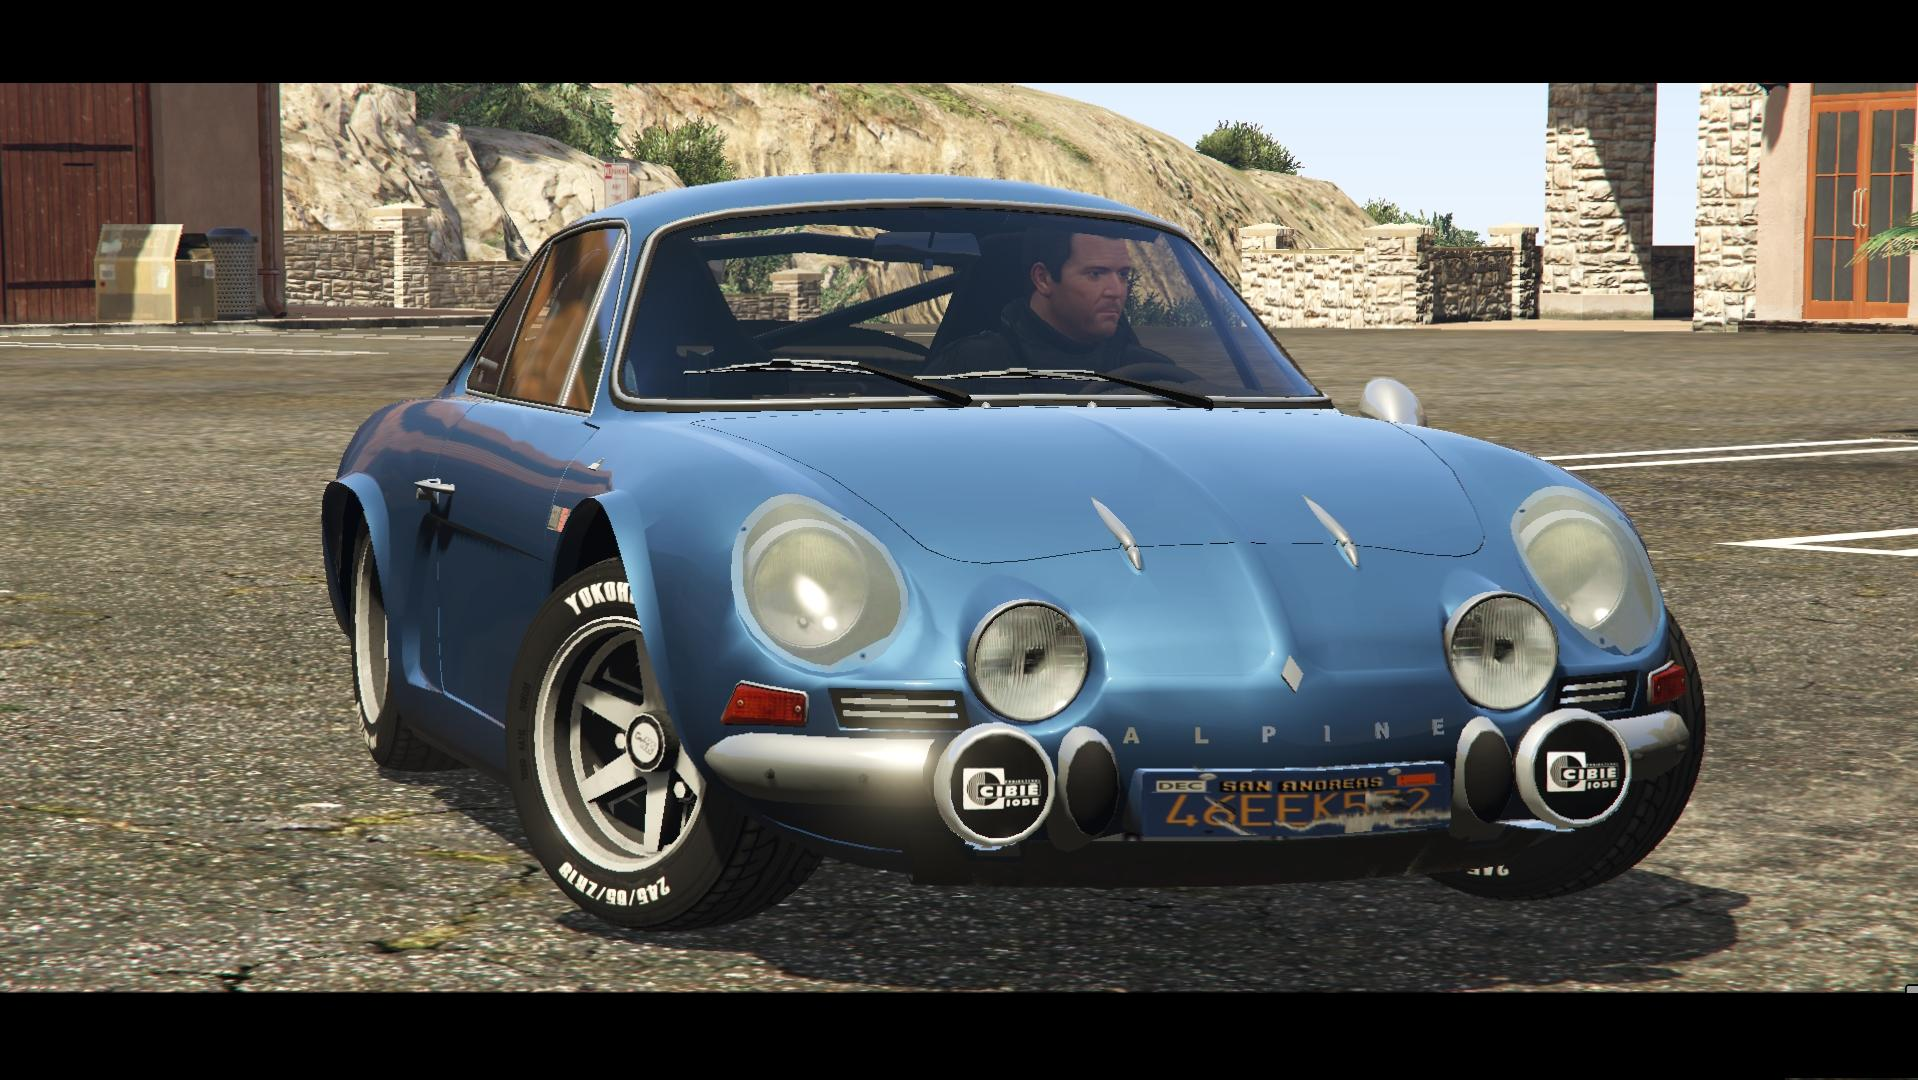 renault alpine a110 1600 s gta5. Black Bedroom Furniture Sets. Home Design Ideas